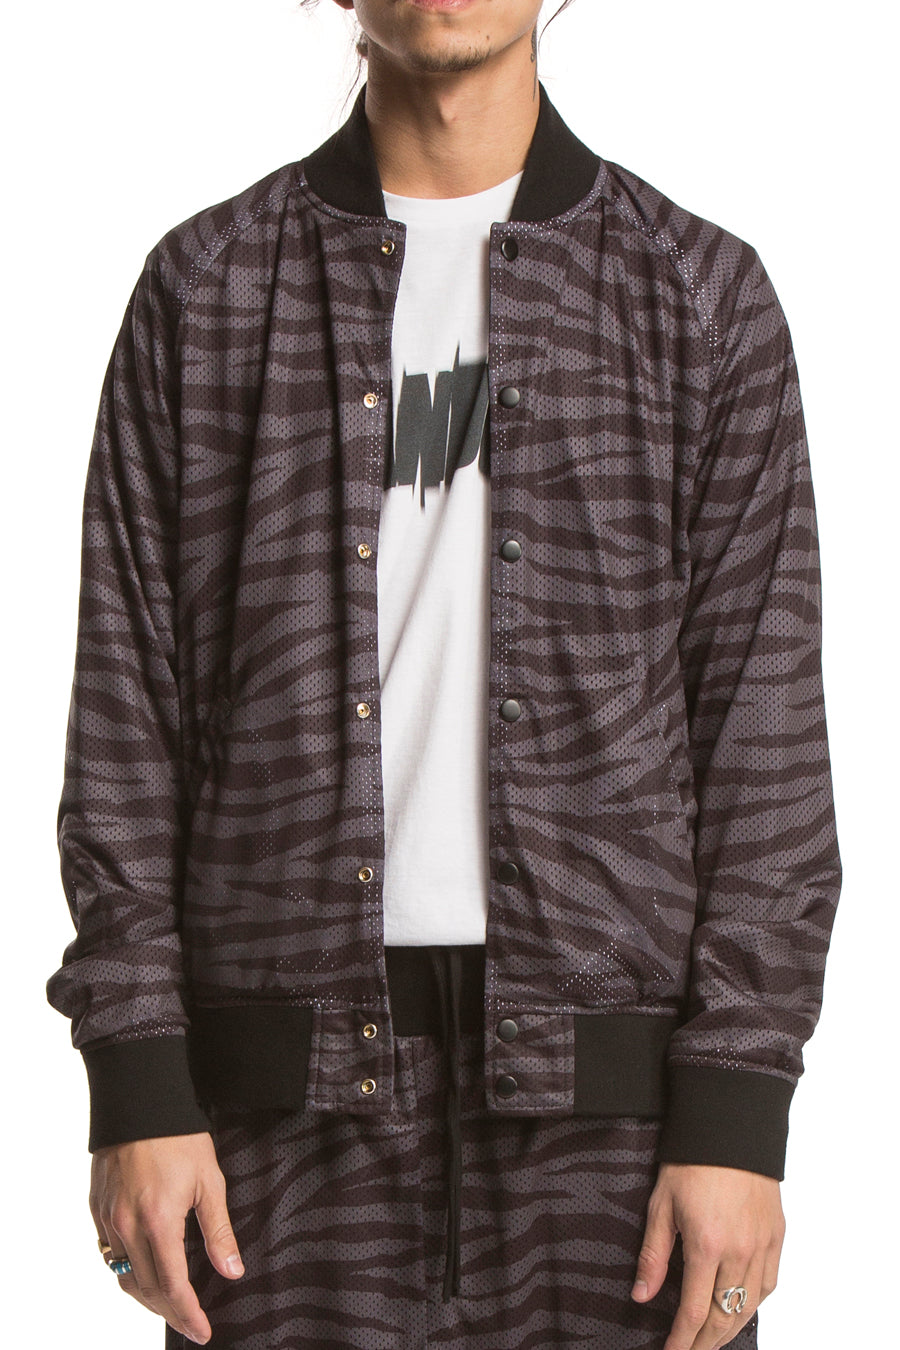 candorofficial - STADIUM REVERSIBLE JACKET - Outerwear